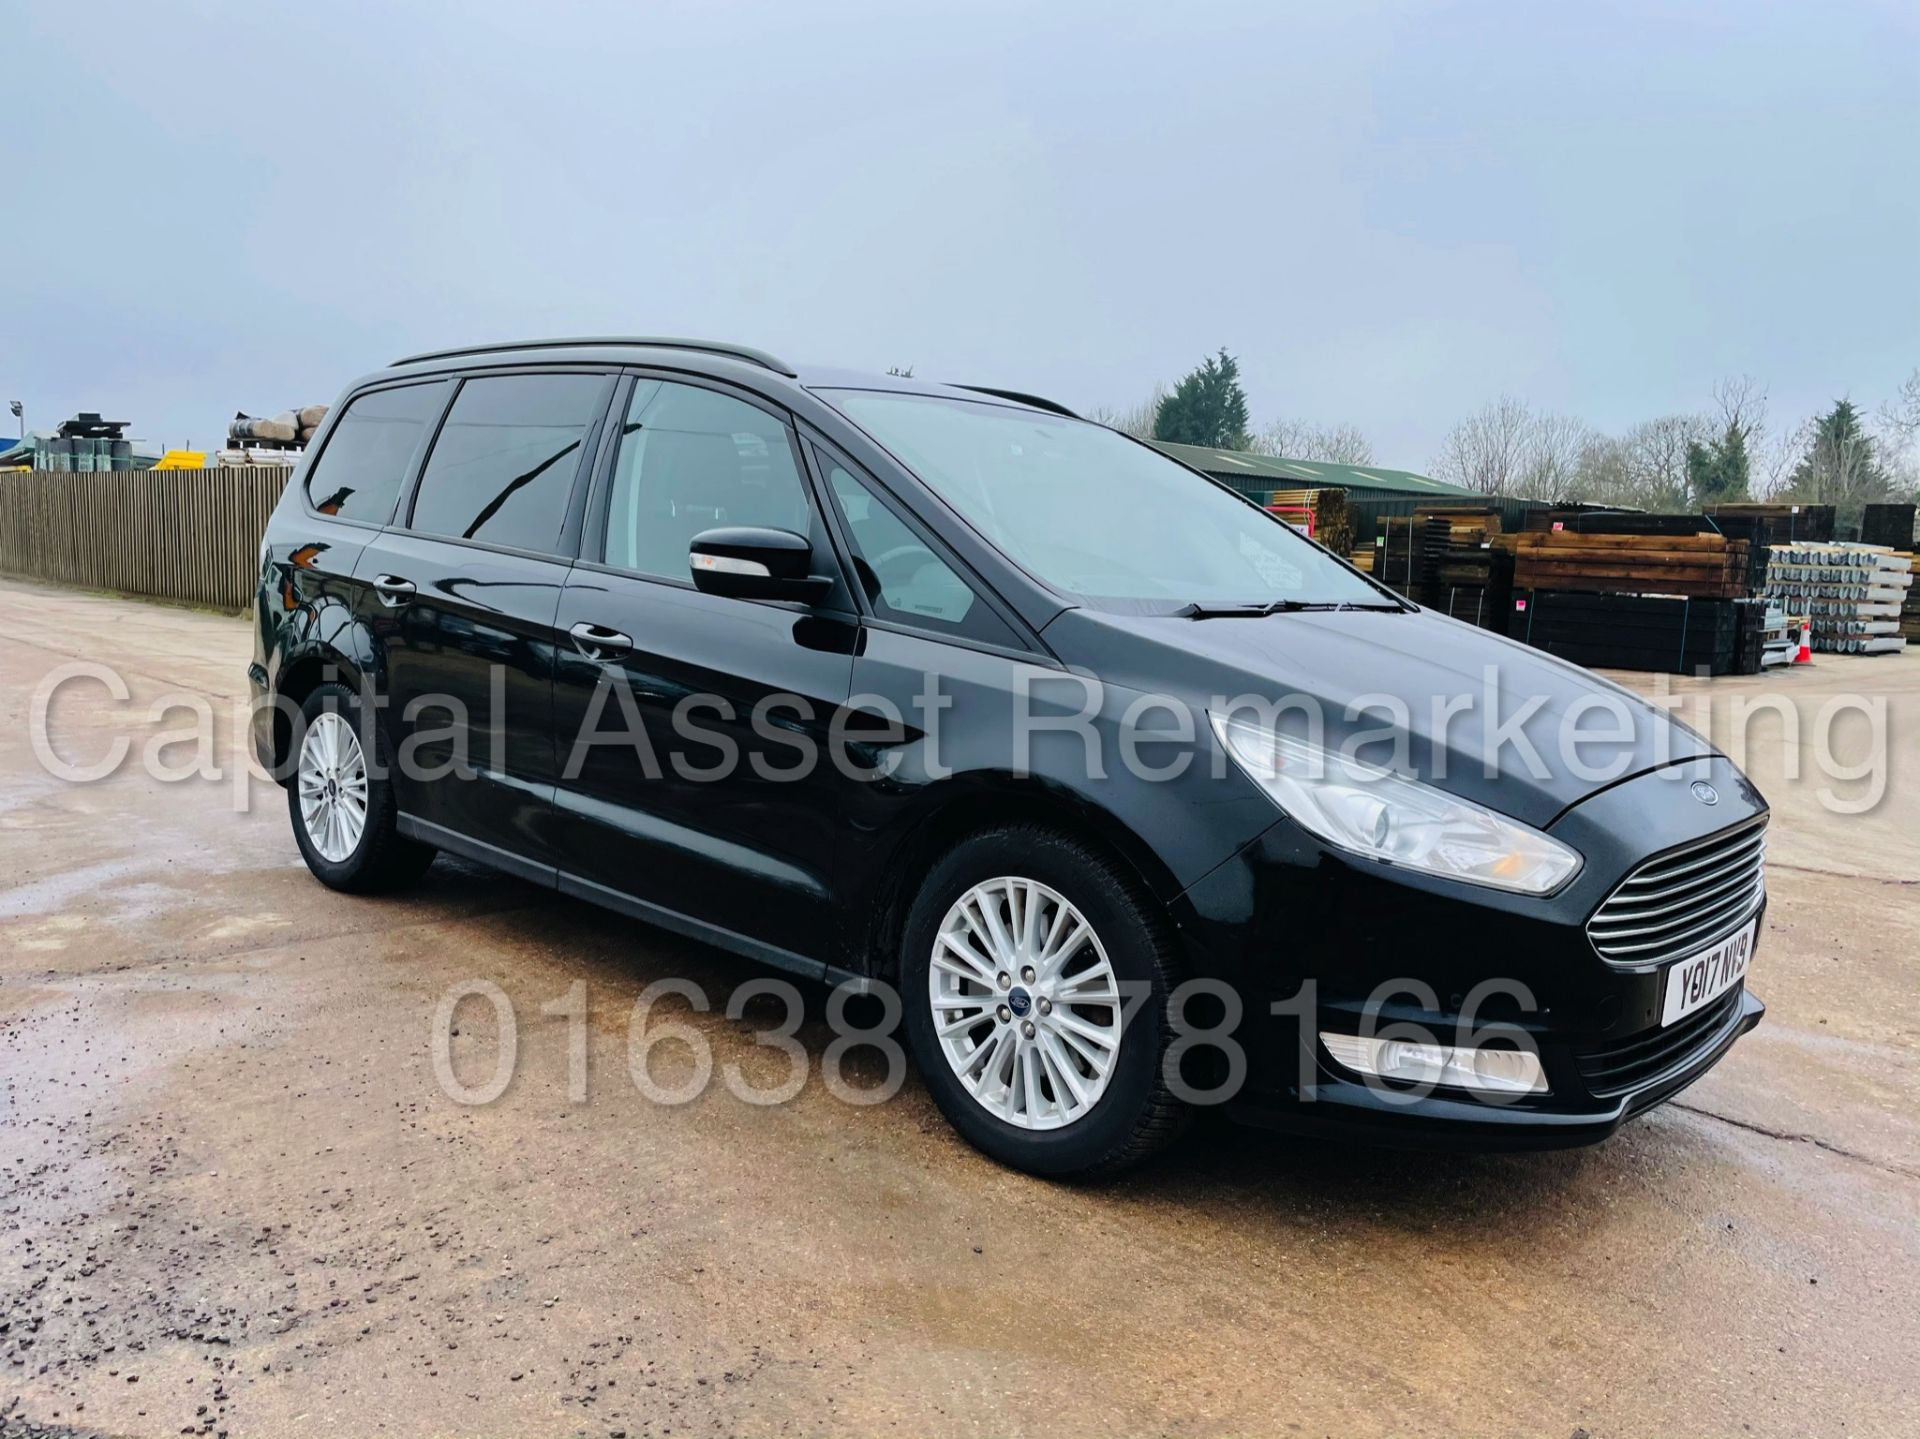 (On Sale) FORD GALAXY *ZETEC EDITION* 7 SEATER MPV (2017 - EURO 6) '2.0 TDCI - AUTO' (1 OWNER) - Image 2 of 48